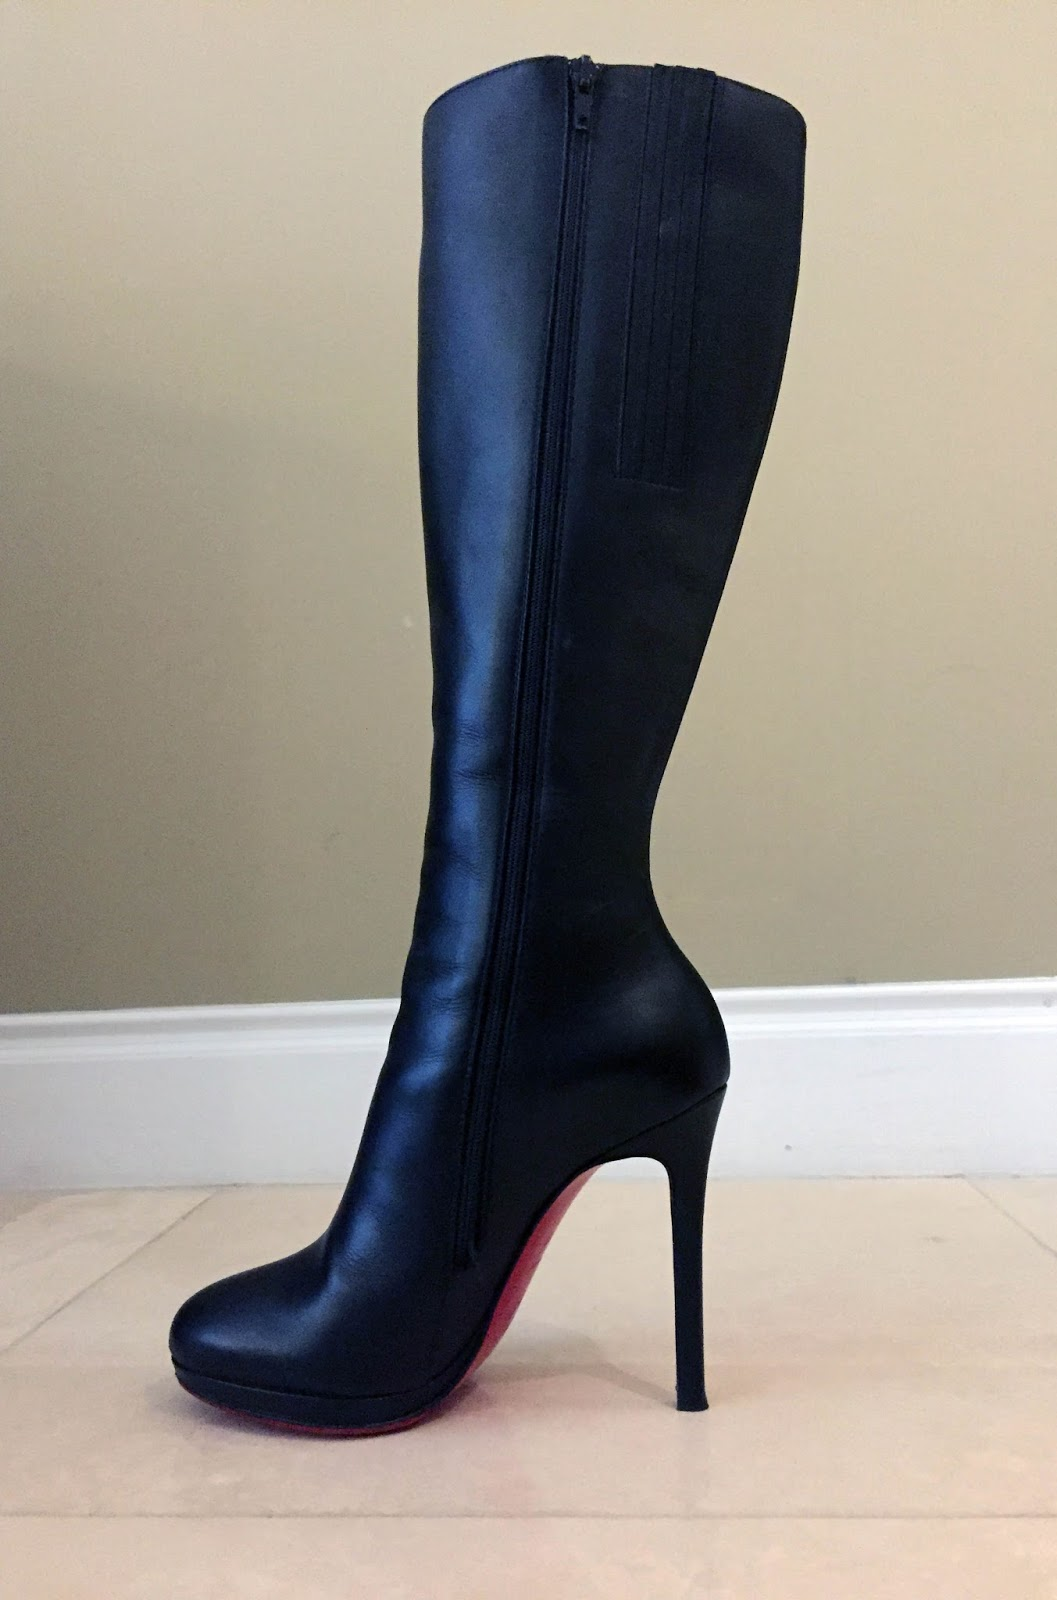 the latest d6c59 269d9 My Superficial Endeavors: Christian Louboutin Botalili Knee ...